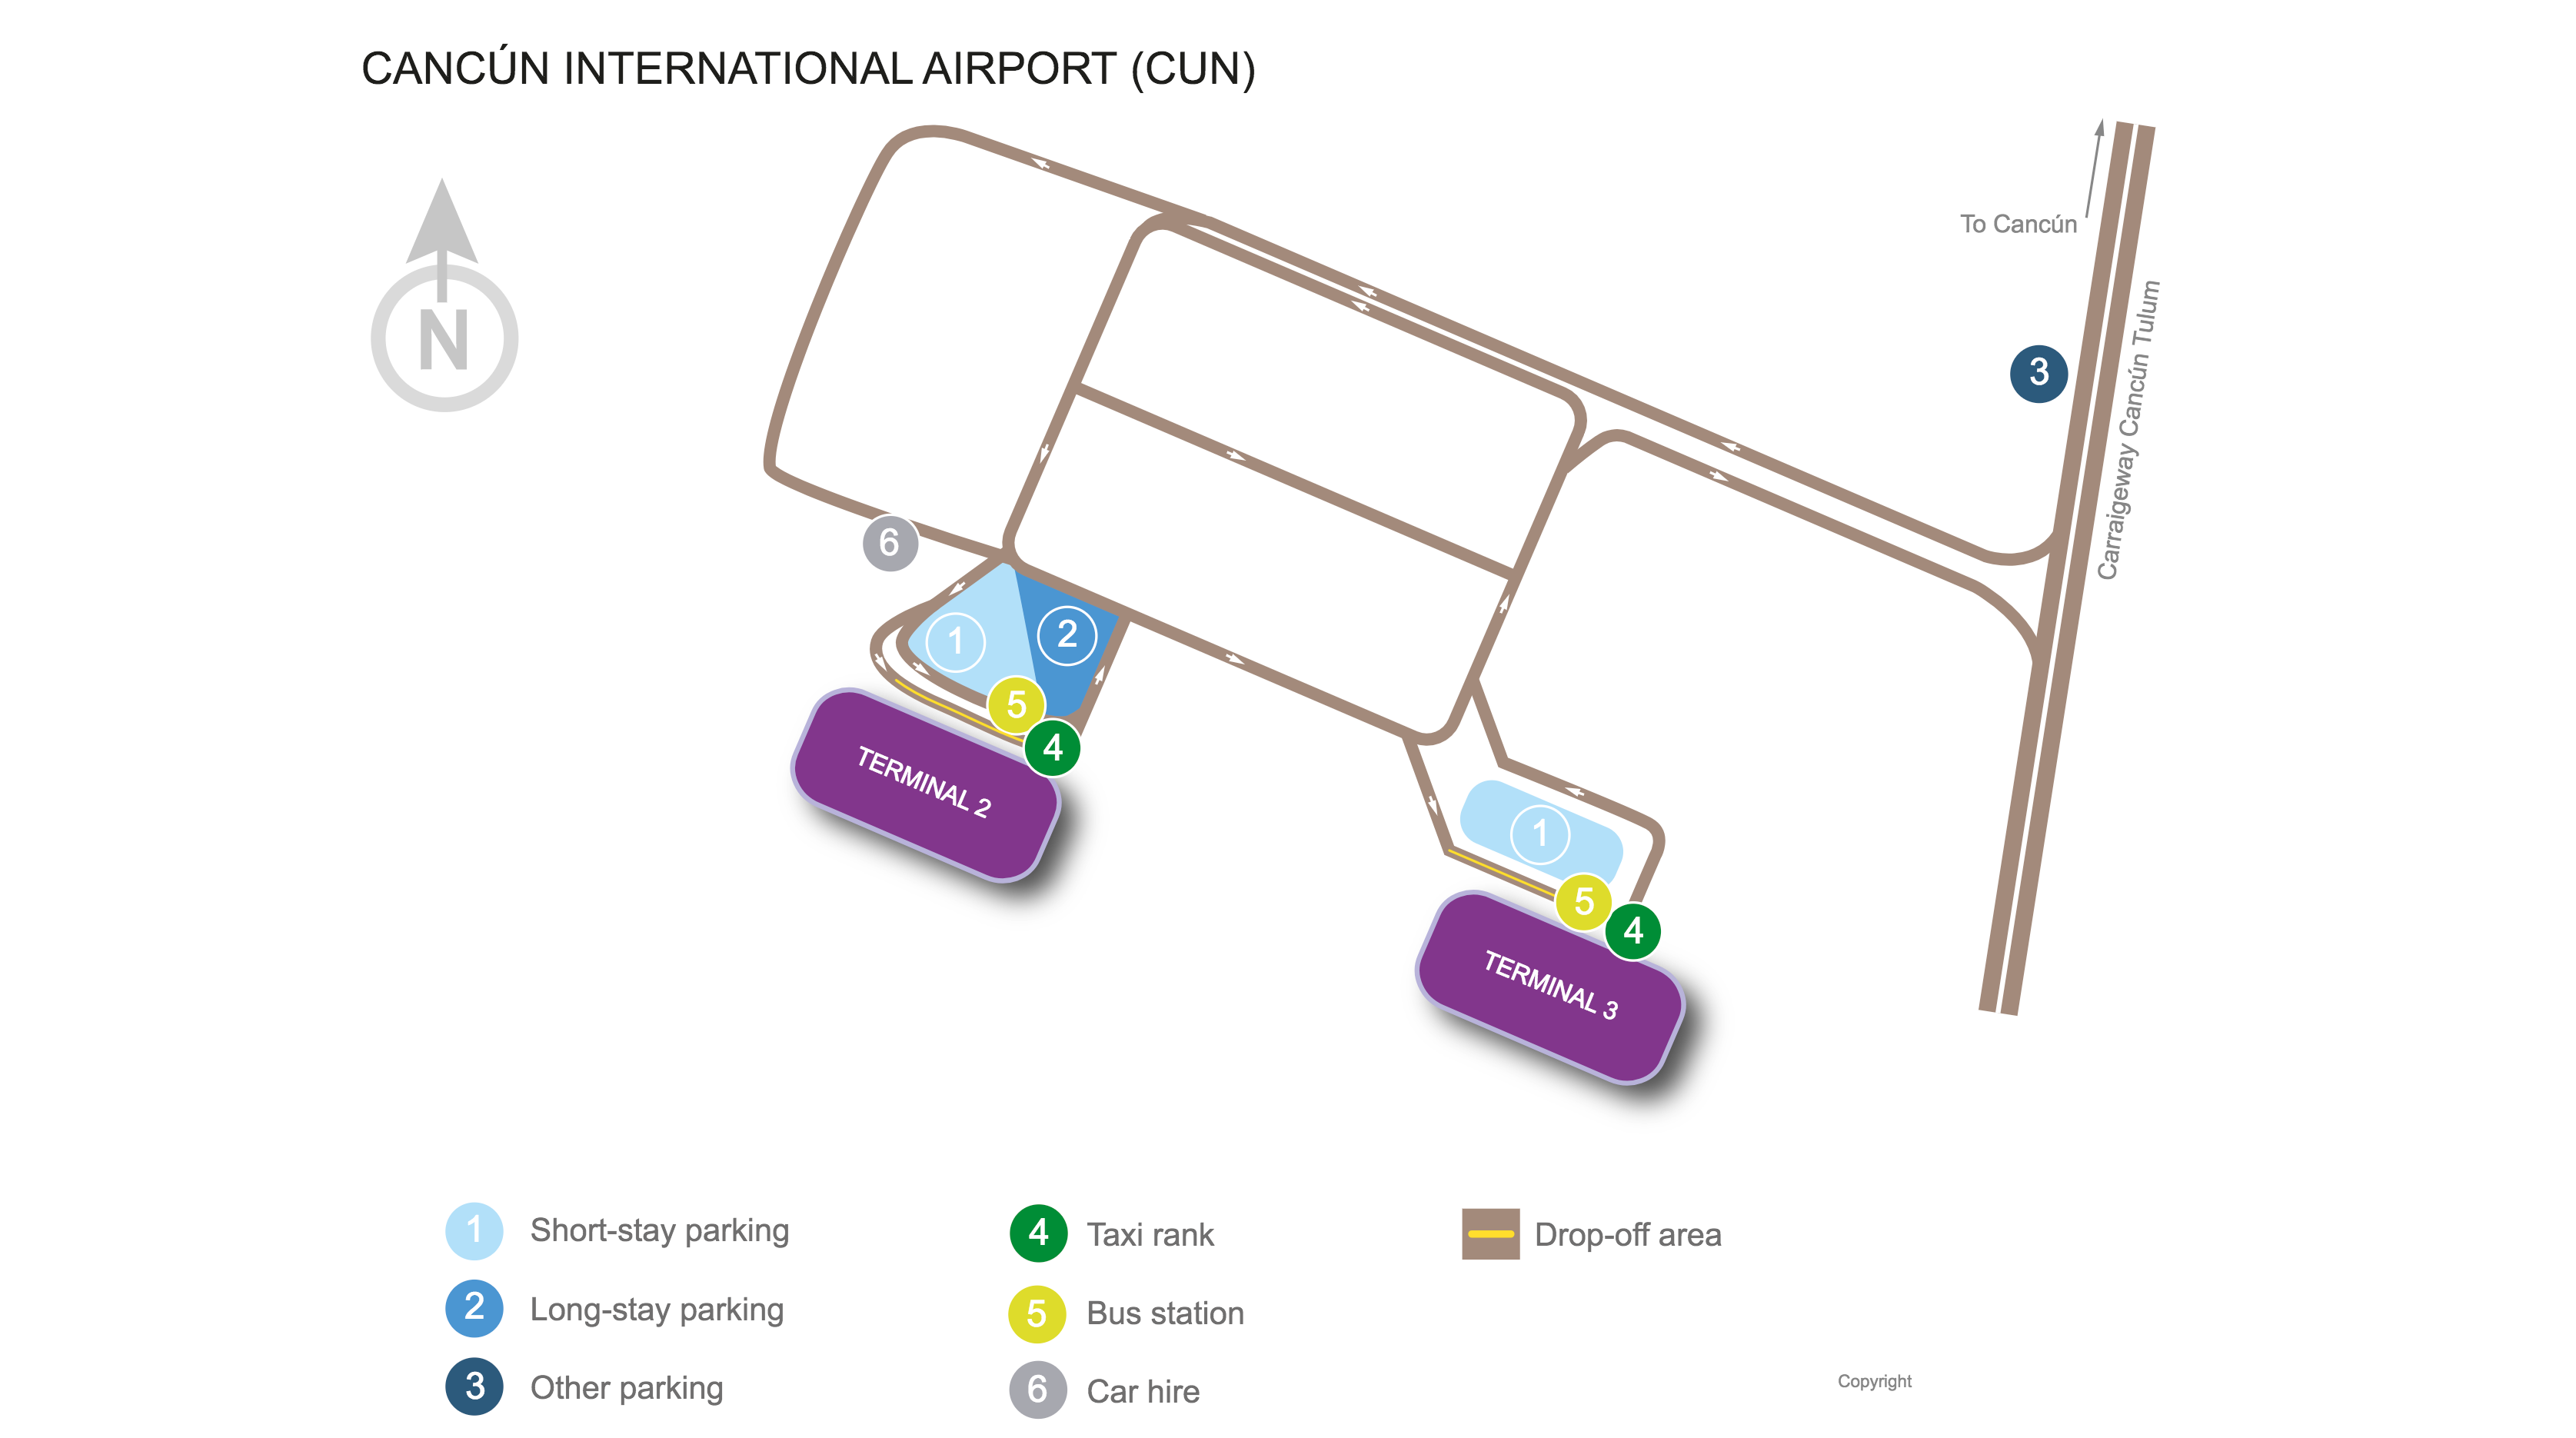 Cancún International Airport map